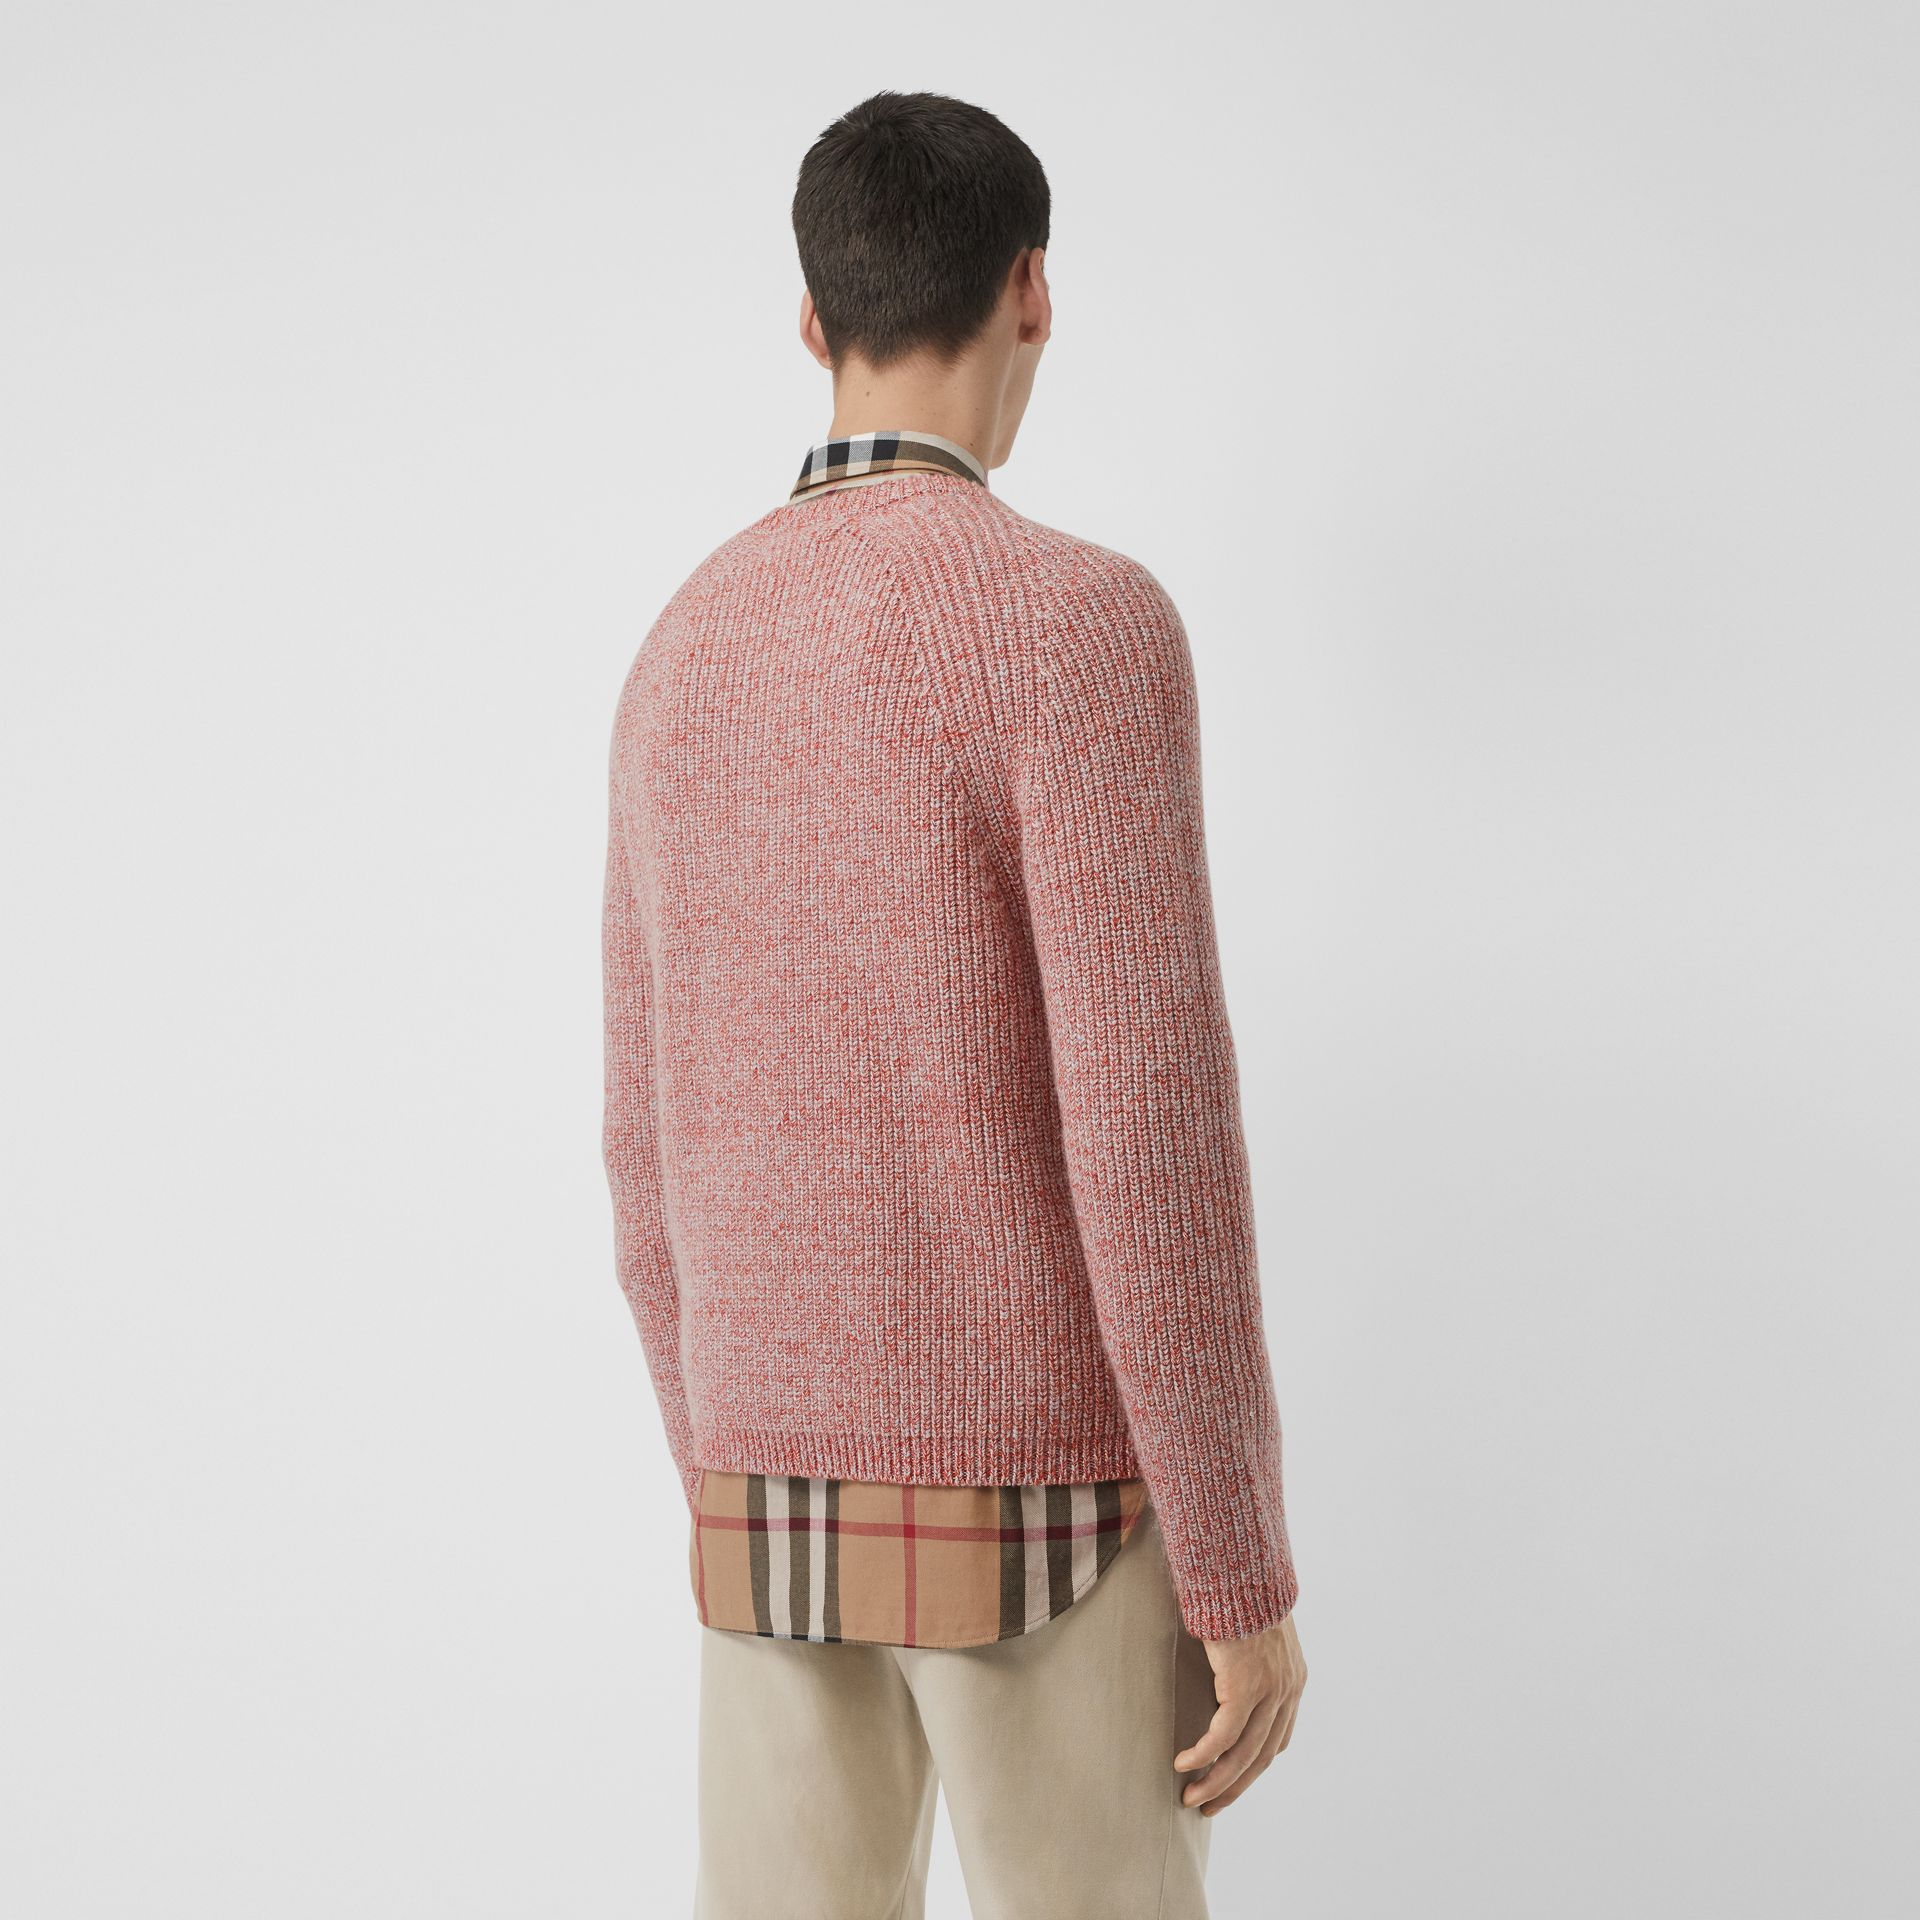 Rib Knit Cashmere Cotton Blend Sweater in Apricot Pink - Men | Burberry - gallery image 2